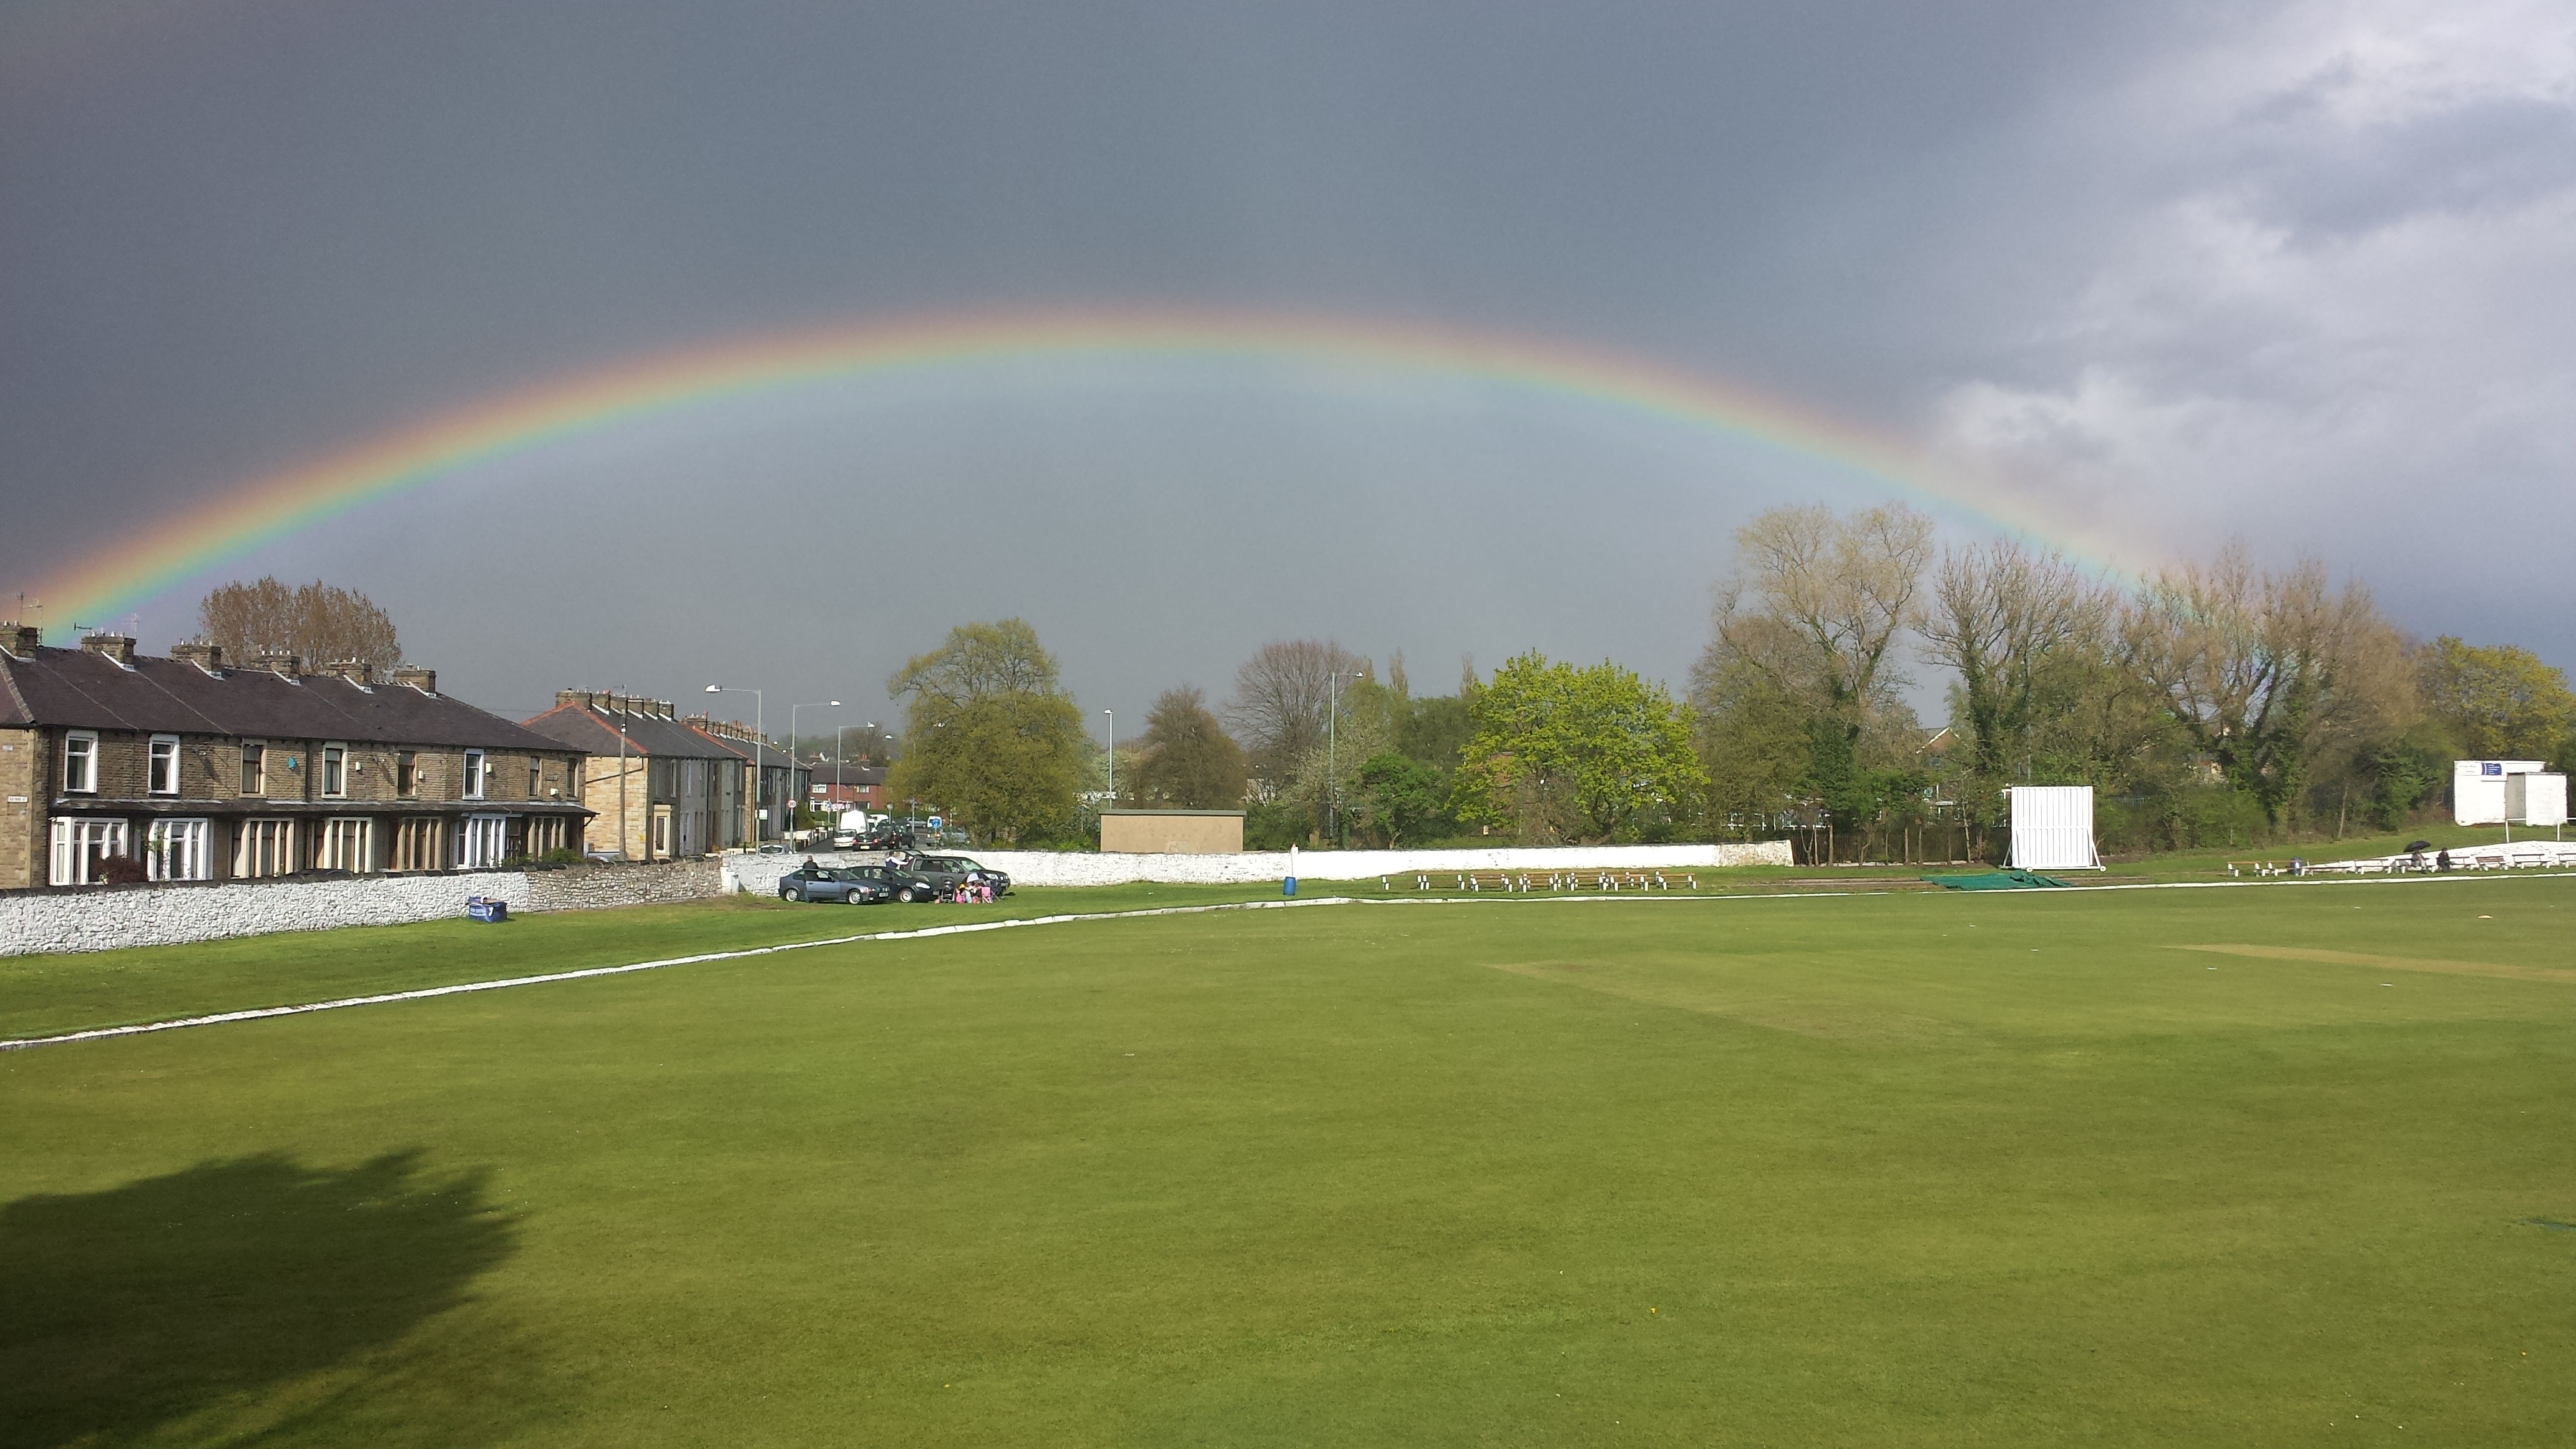 Rainbow at Lowerhouse